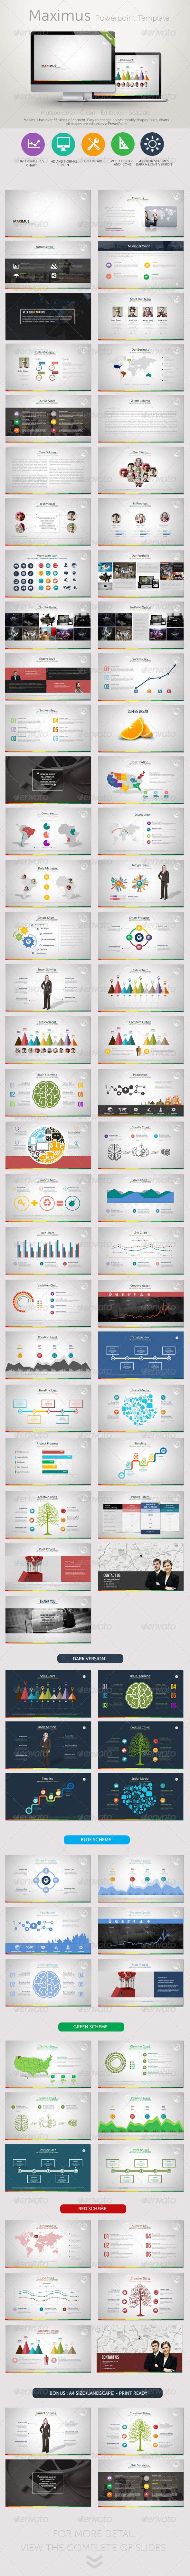 GraphicRiver Maximus PowerPoint Presentation Template 8753194